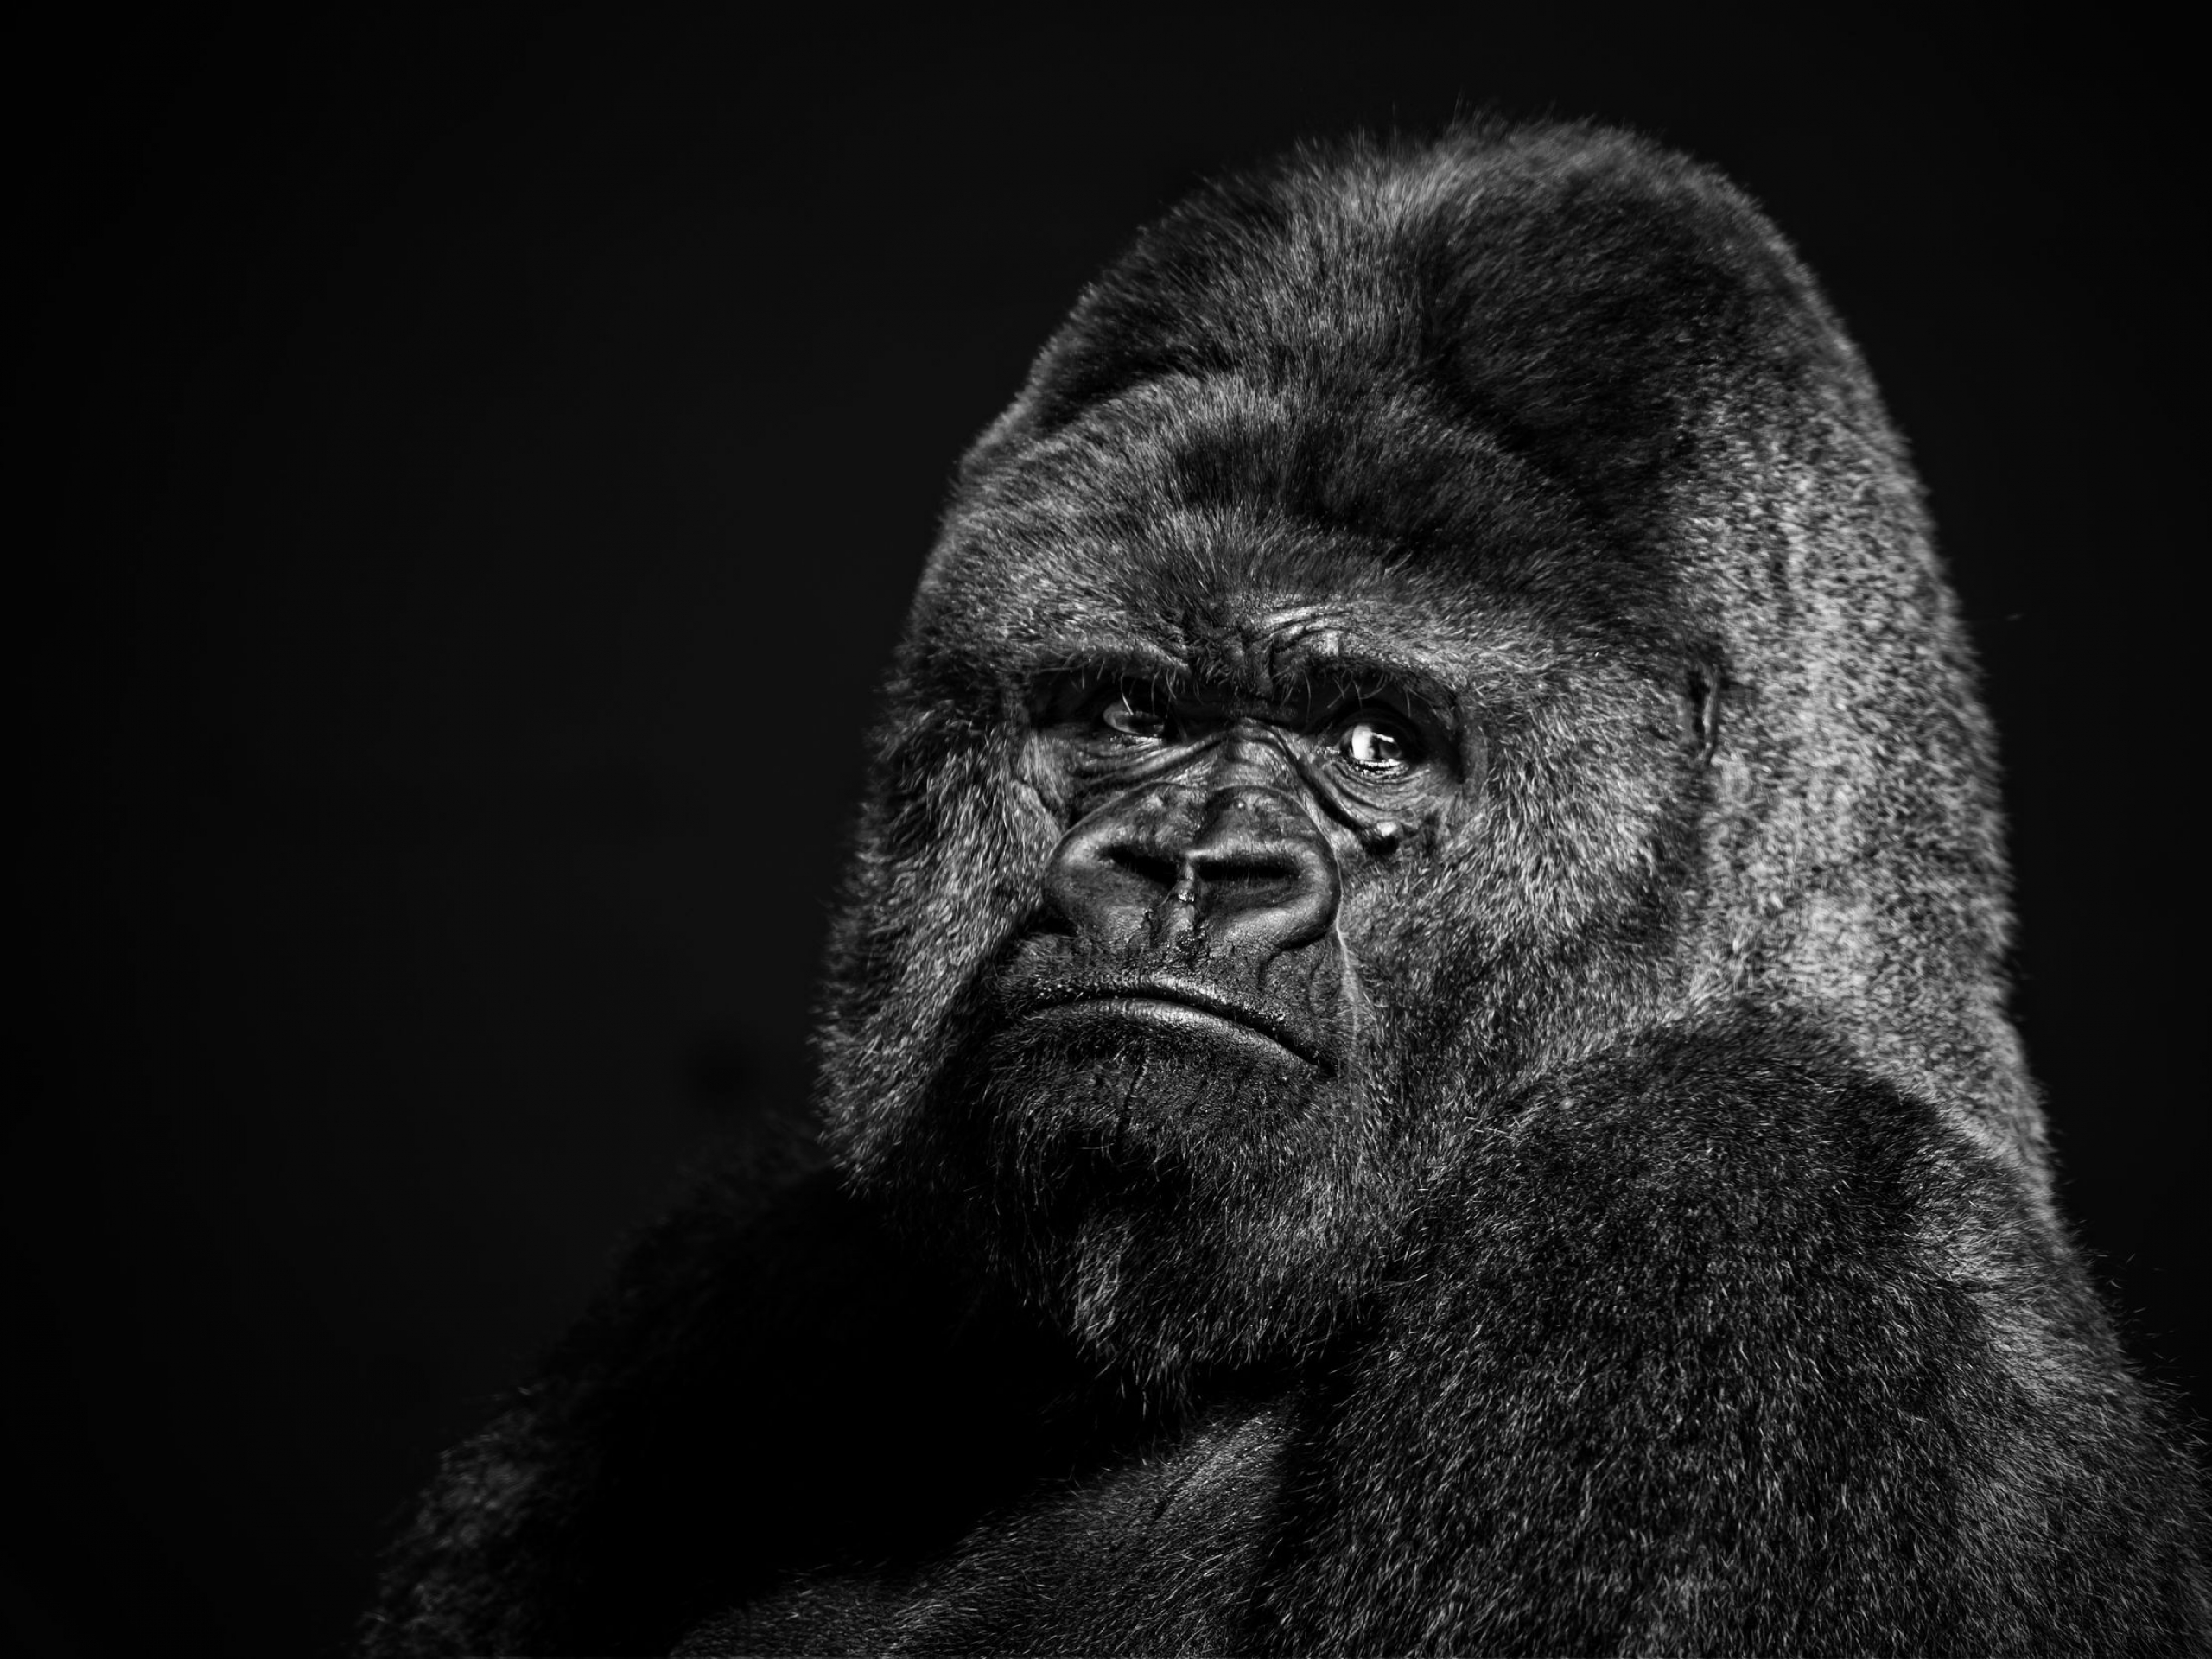 Gorilla HD Wallpapers 2560x1920